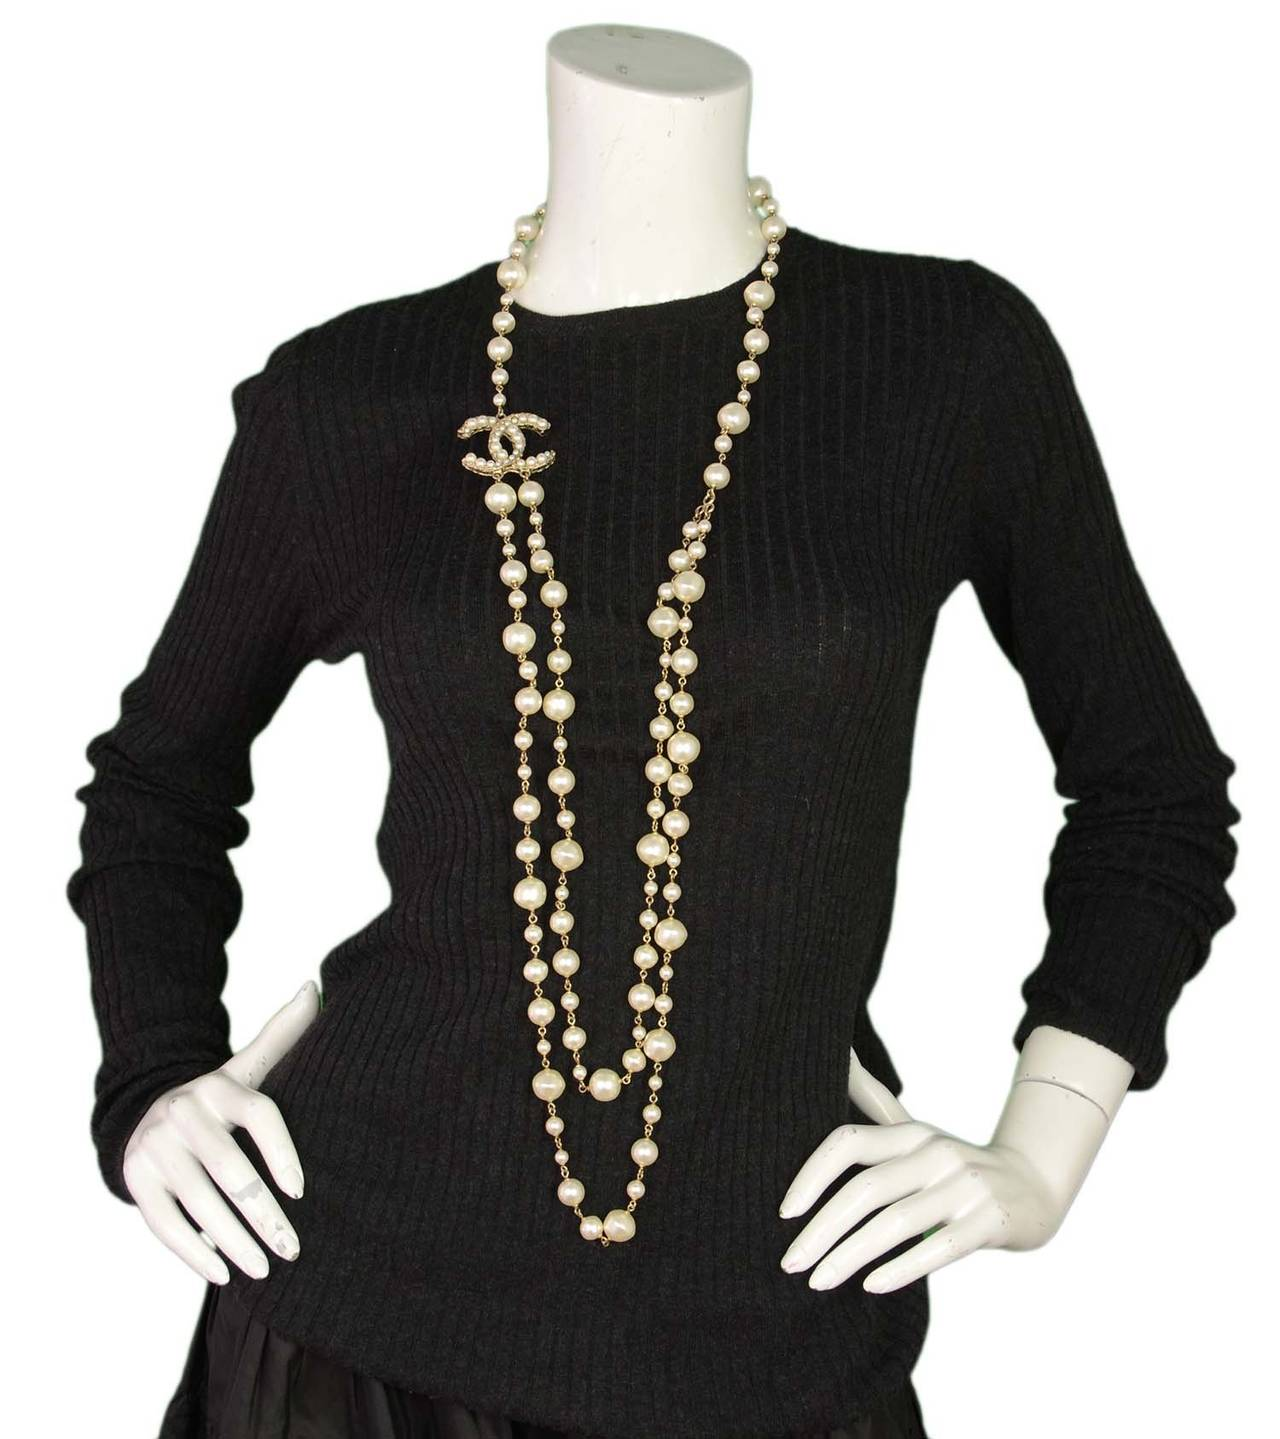 CHANEL 2011 X-Long Double Strand Faux Pearl Necklace w/ CC 7